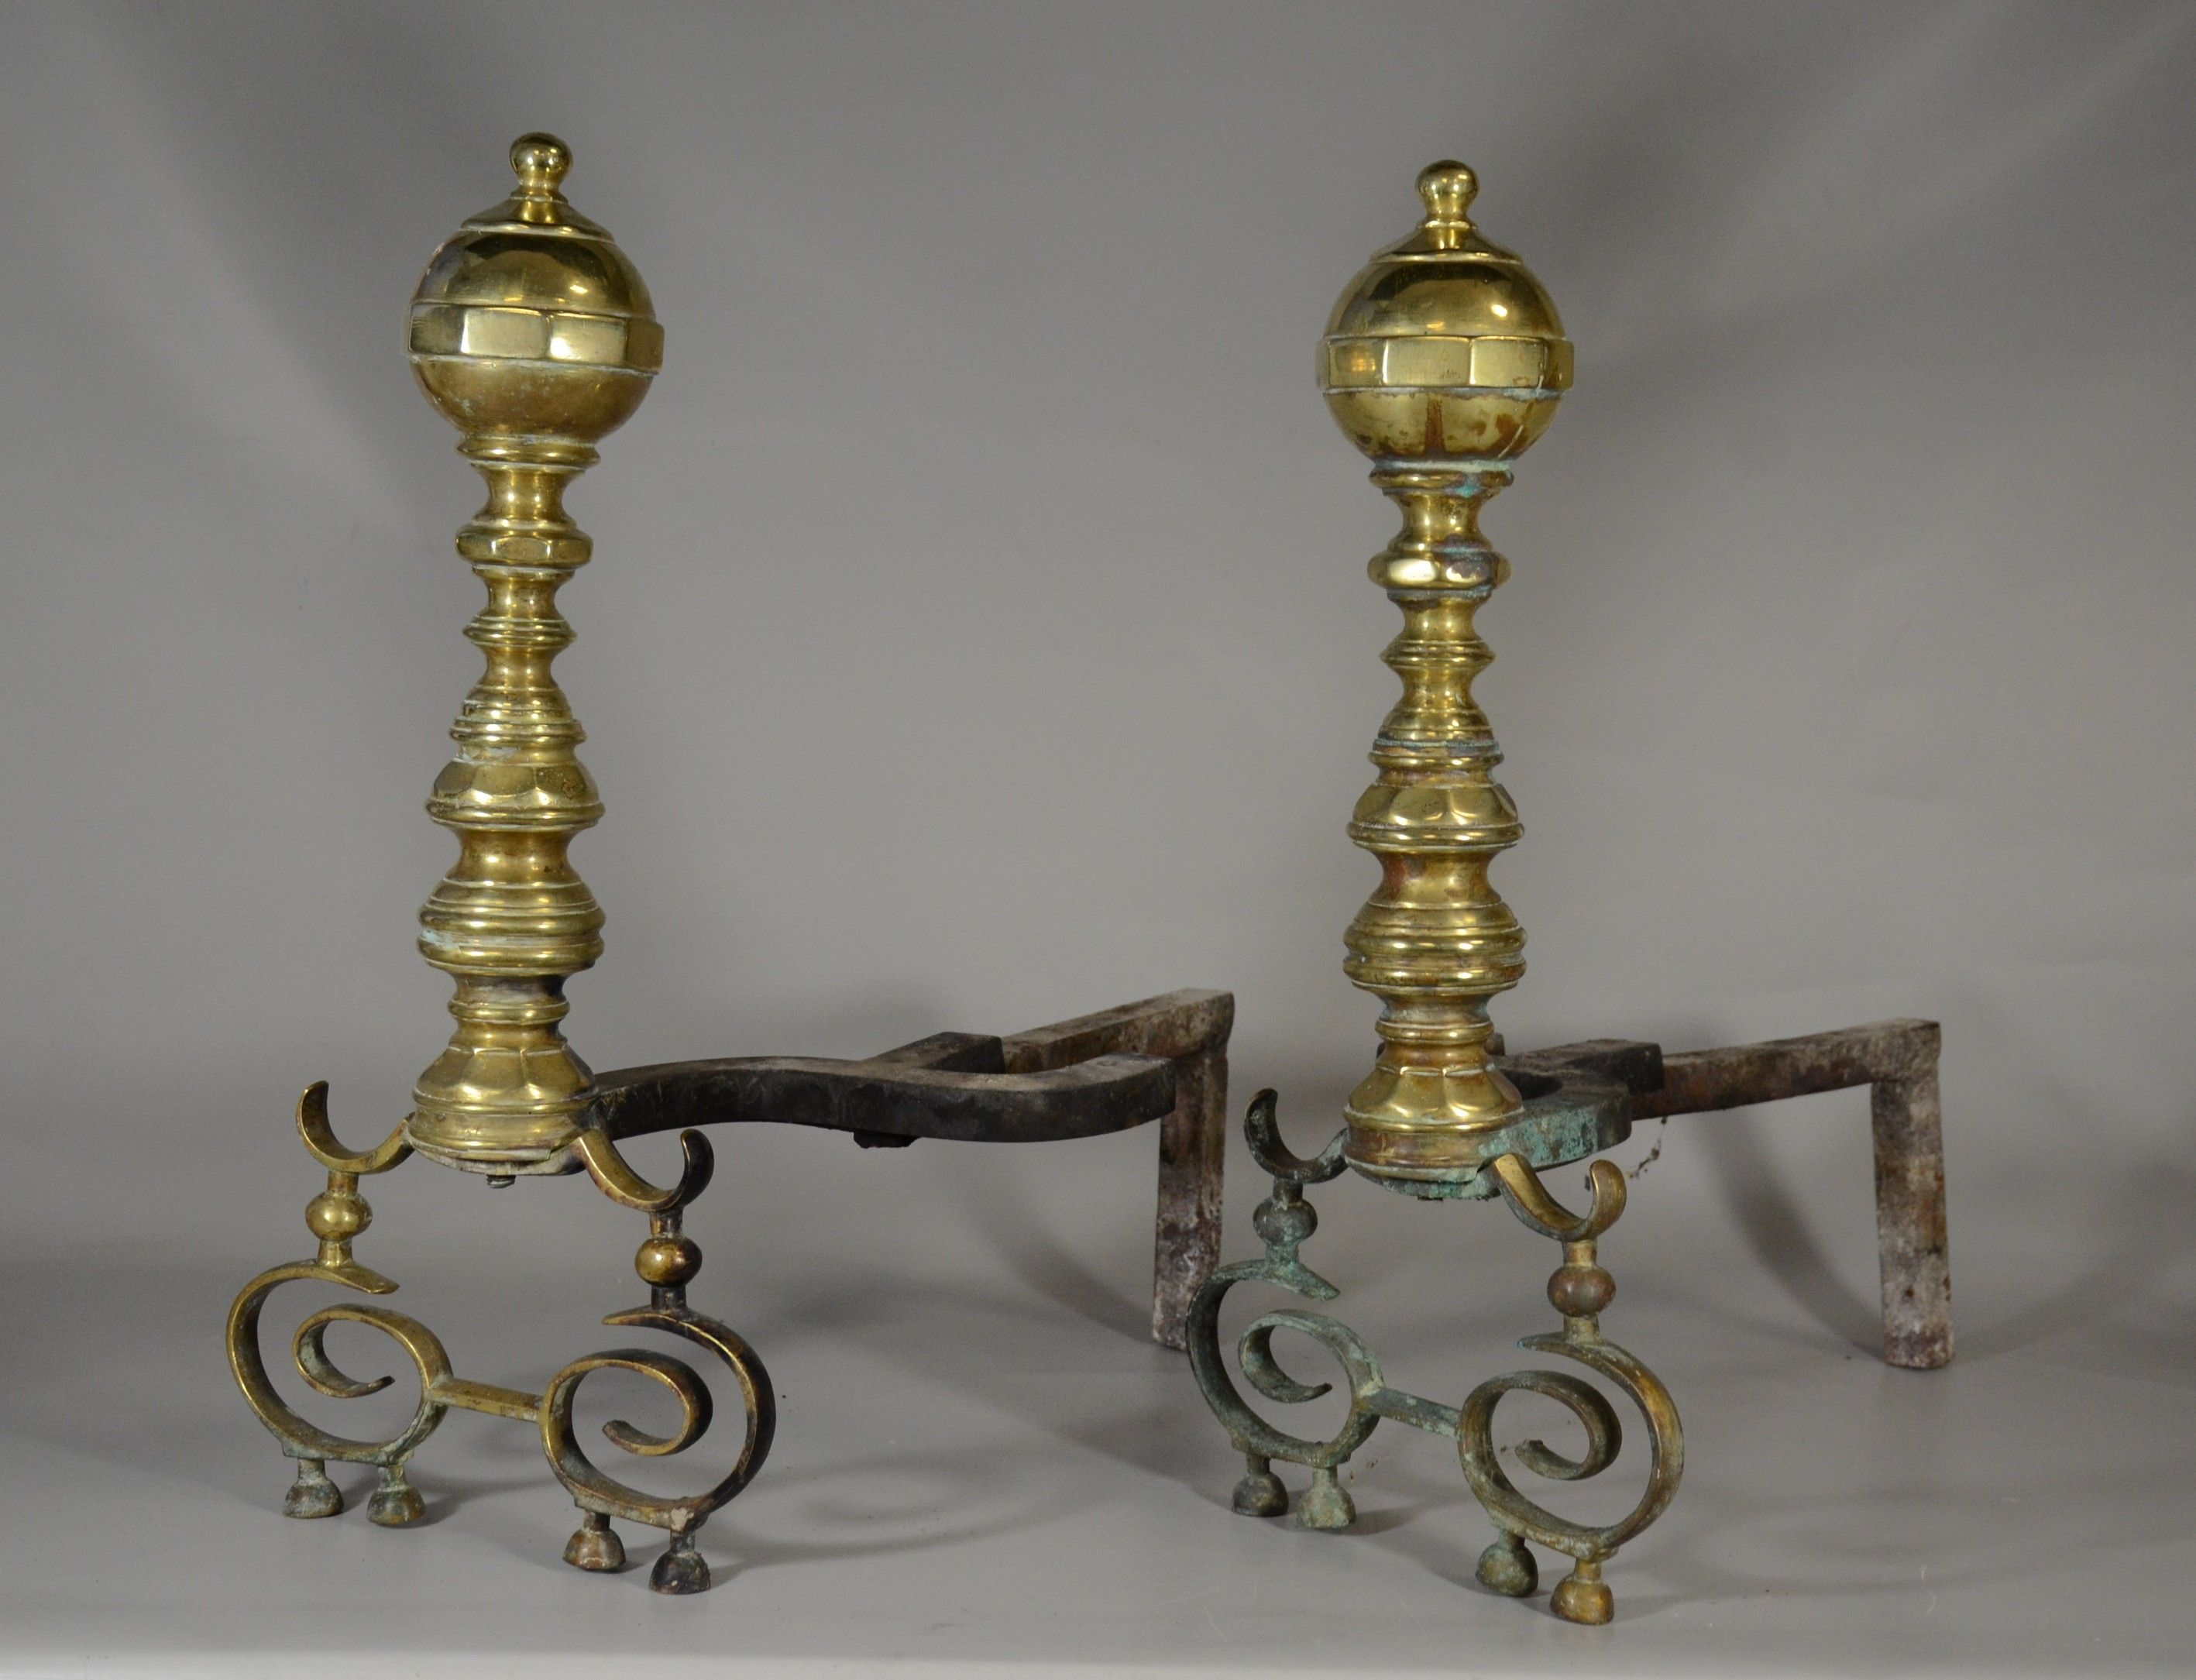 Lot 2322 Pair Of Antique Brass Fireplace Andirons Fireplace